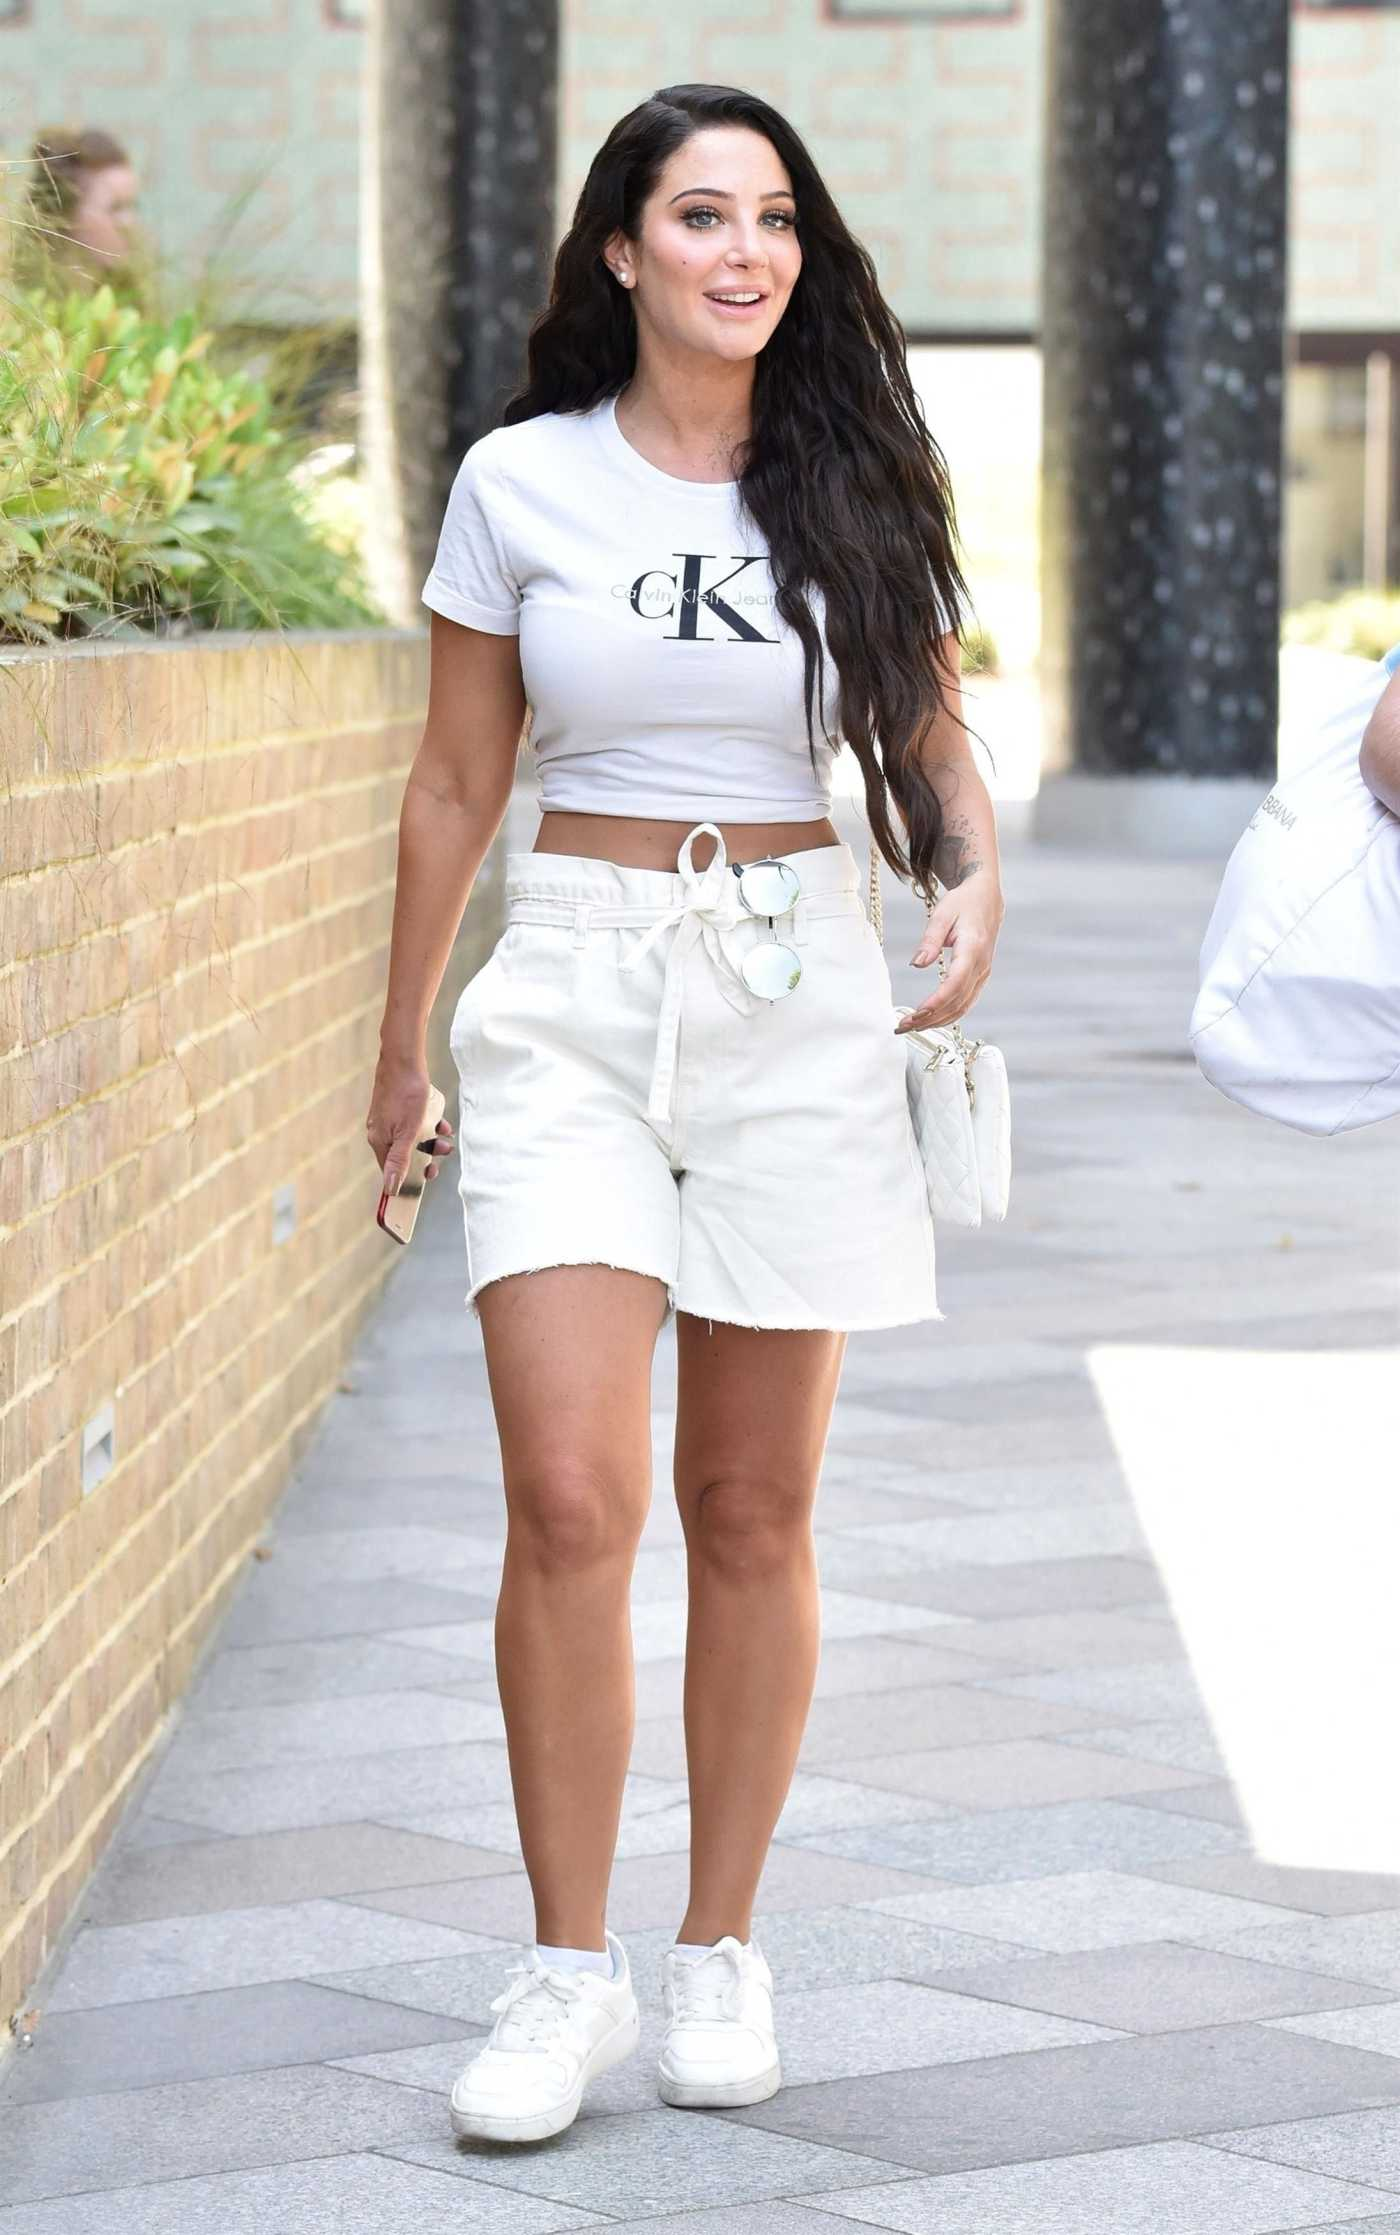 Tulisa Contostavlos in a White Tee Arrives at ITV Studios in London 07/23/2019